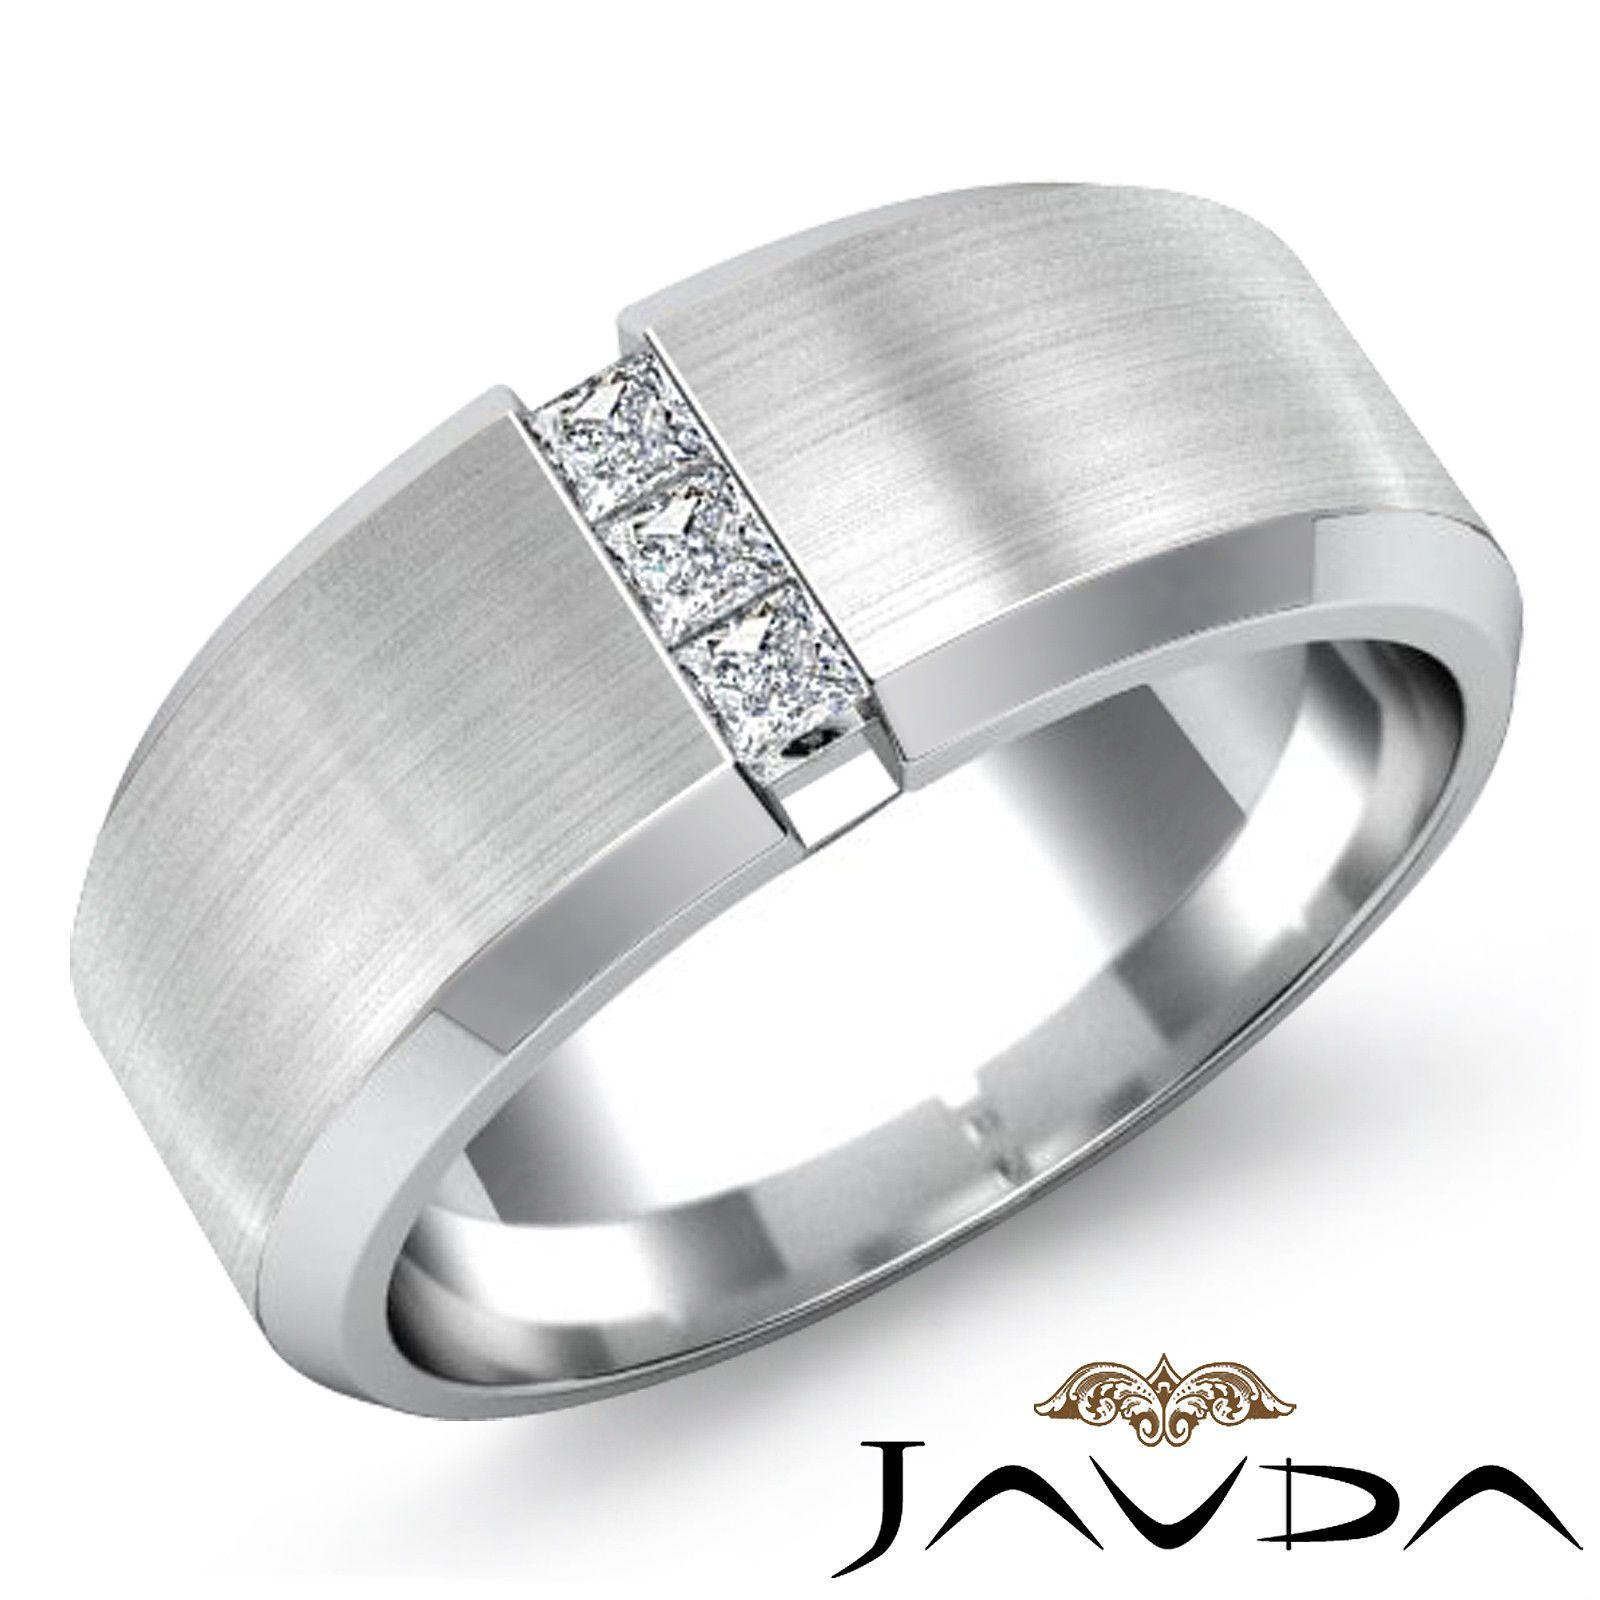 3 Stone Mens Half Wedding Band Princess Diamond Bezel Ring 14k White Gold 0 25ct Ebay